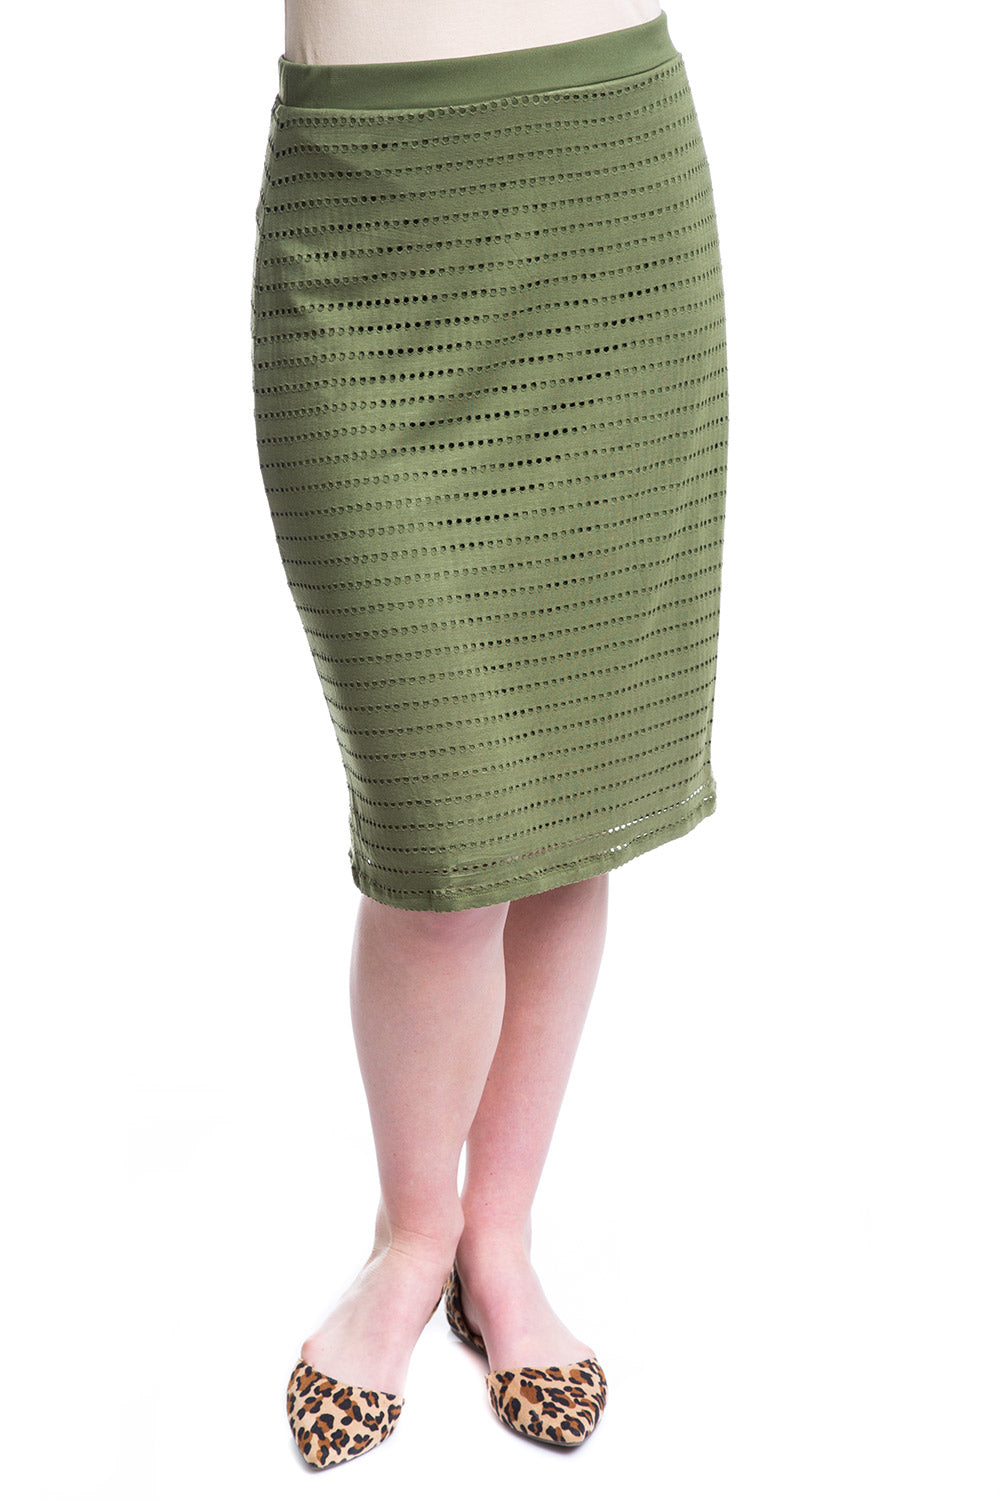 Type 3 Run DMC Skirt In Olive